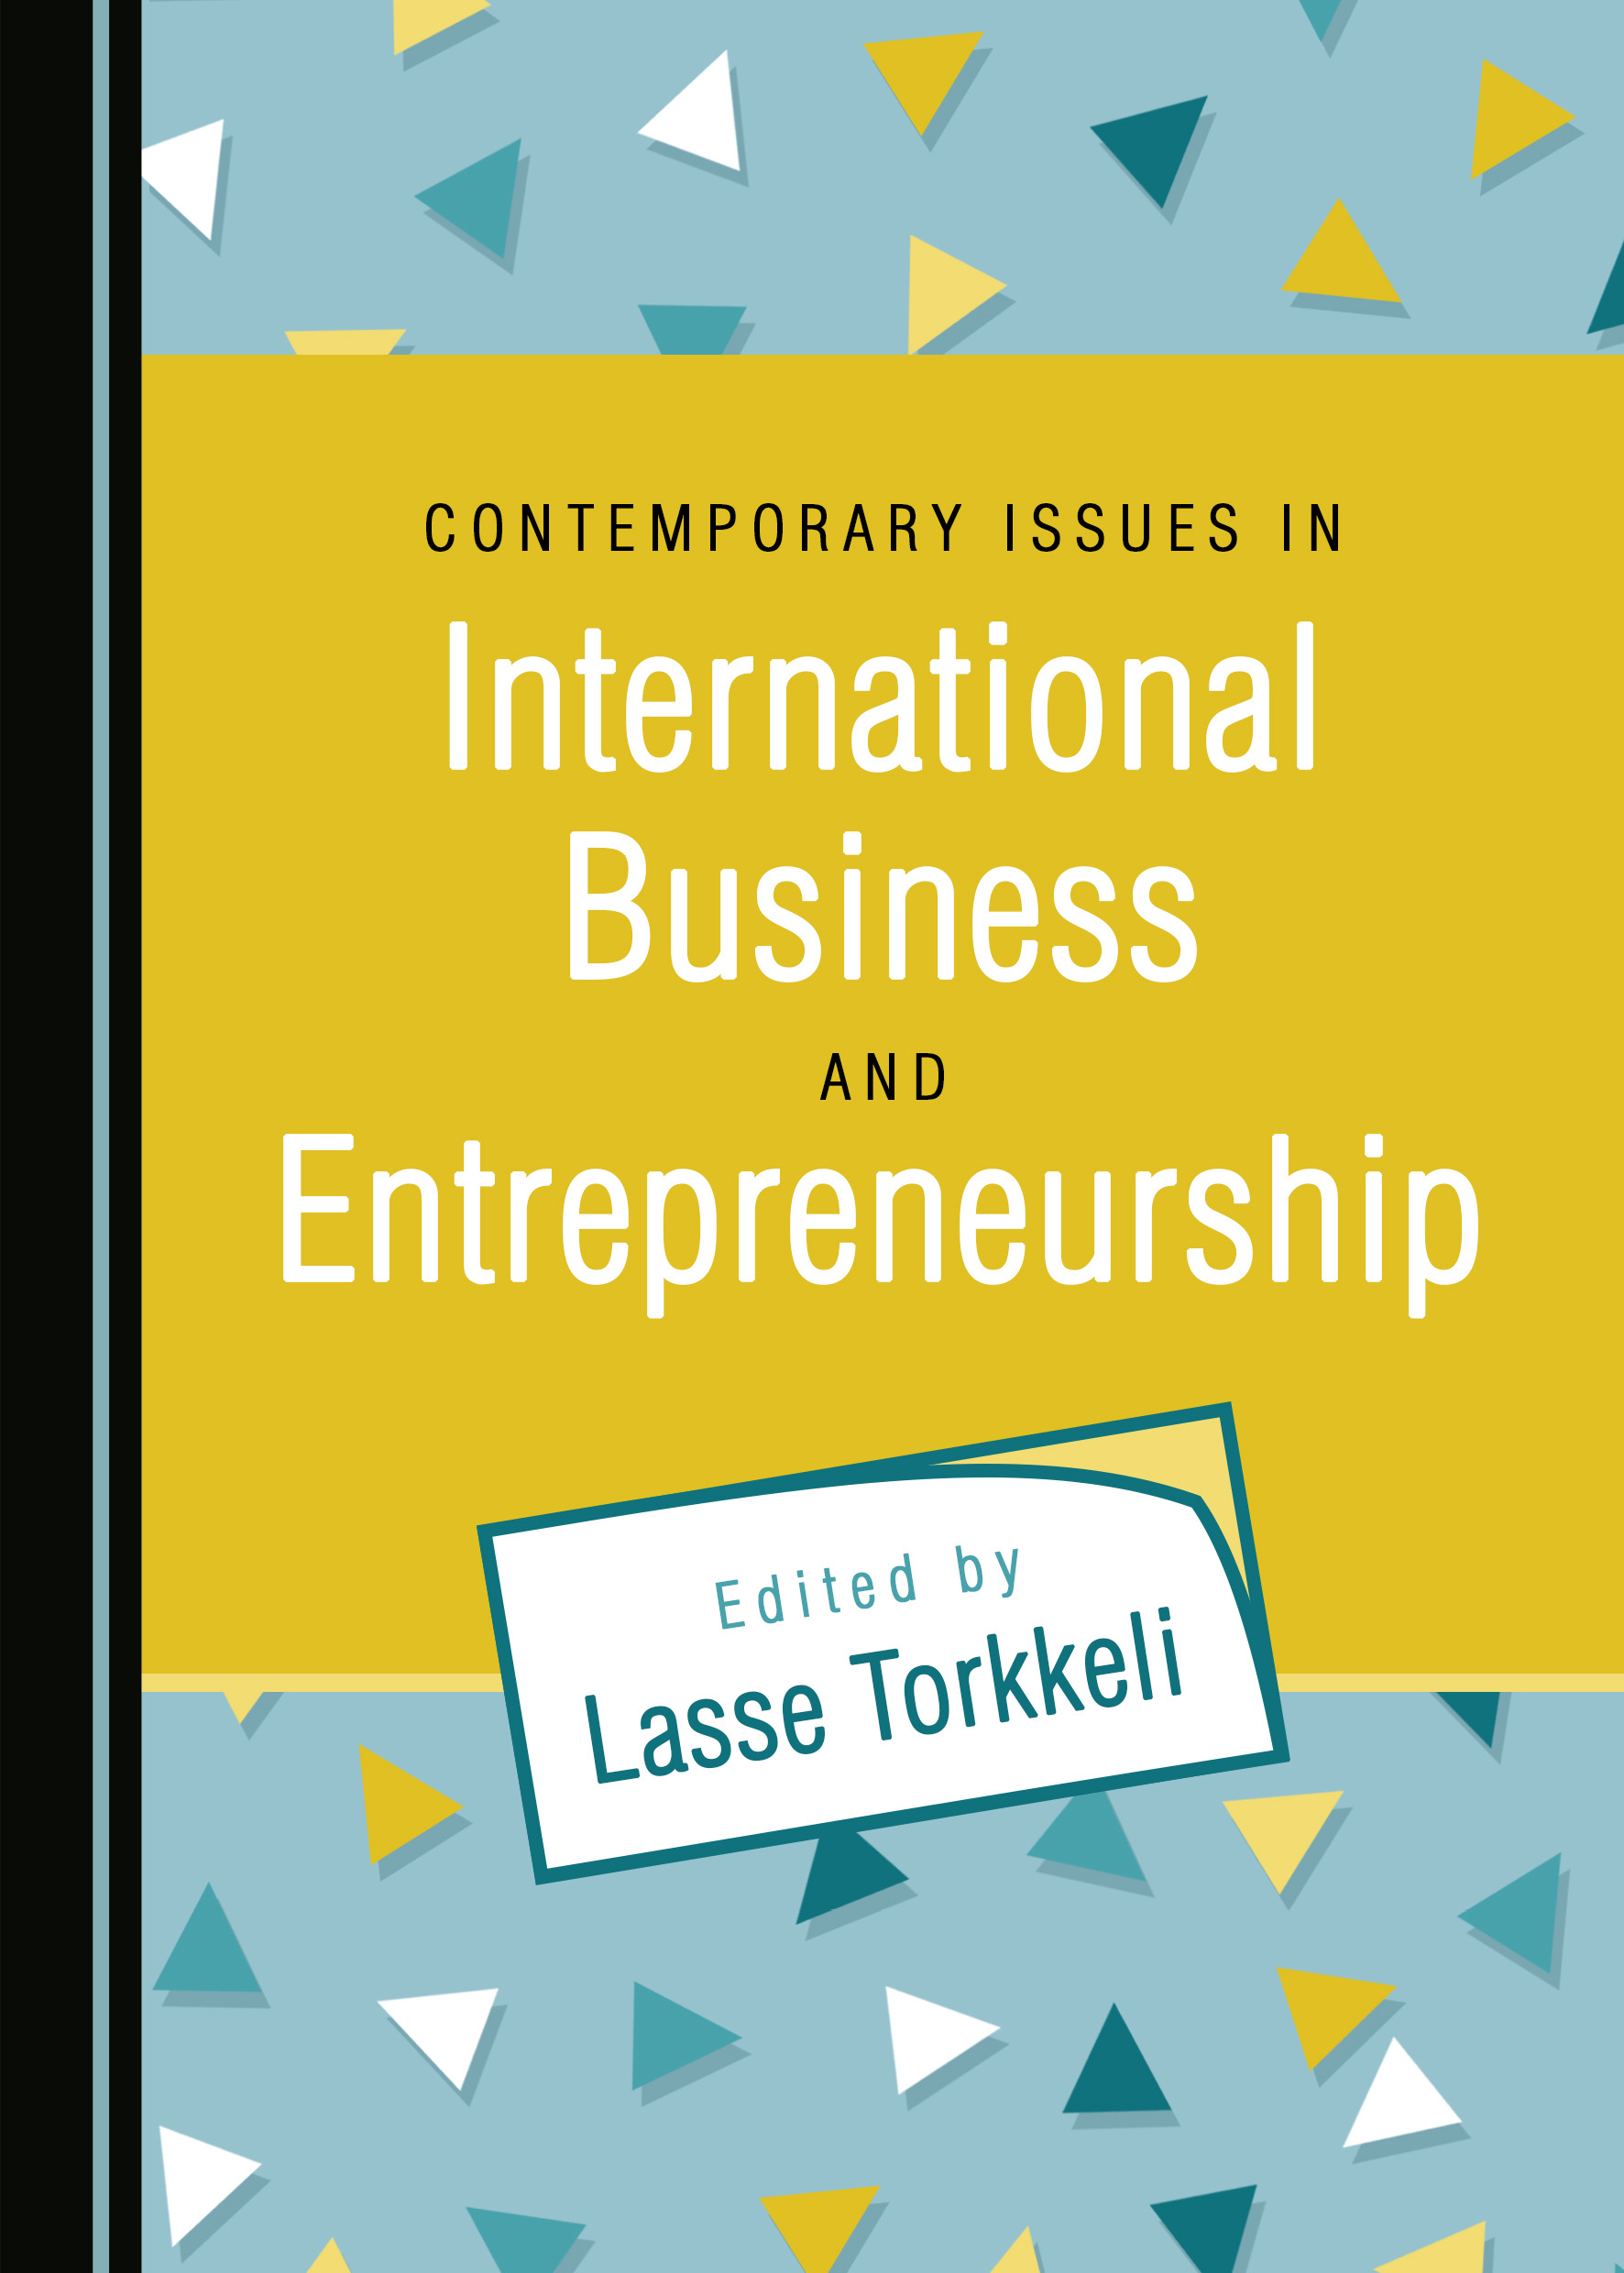 Contemporary Issues in International Business and Entrepreneurship